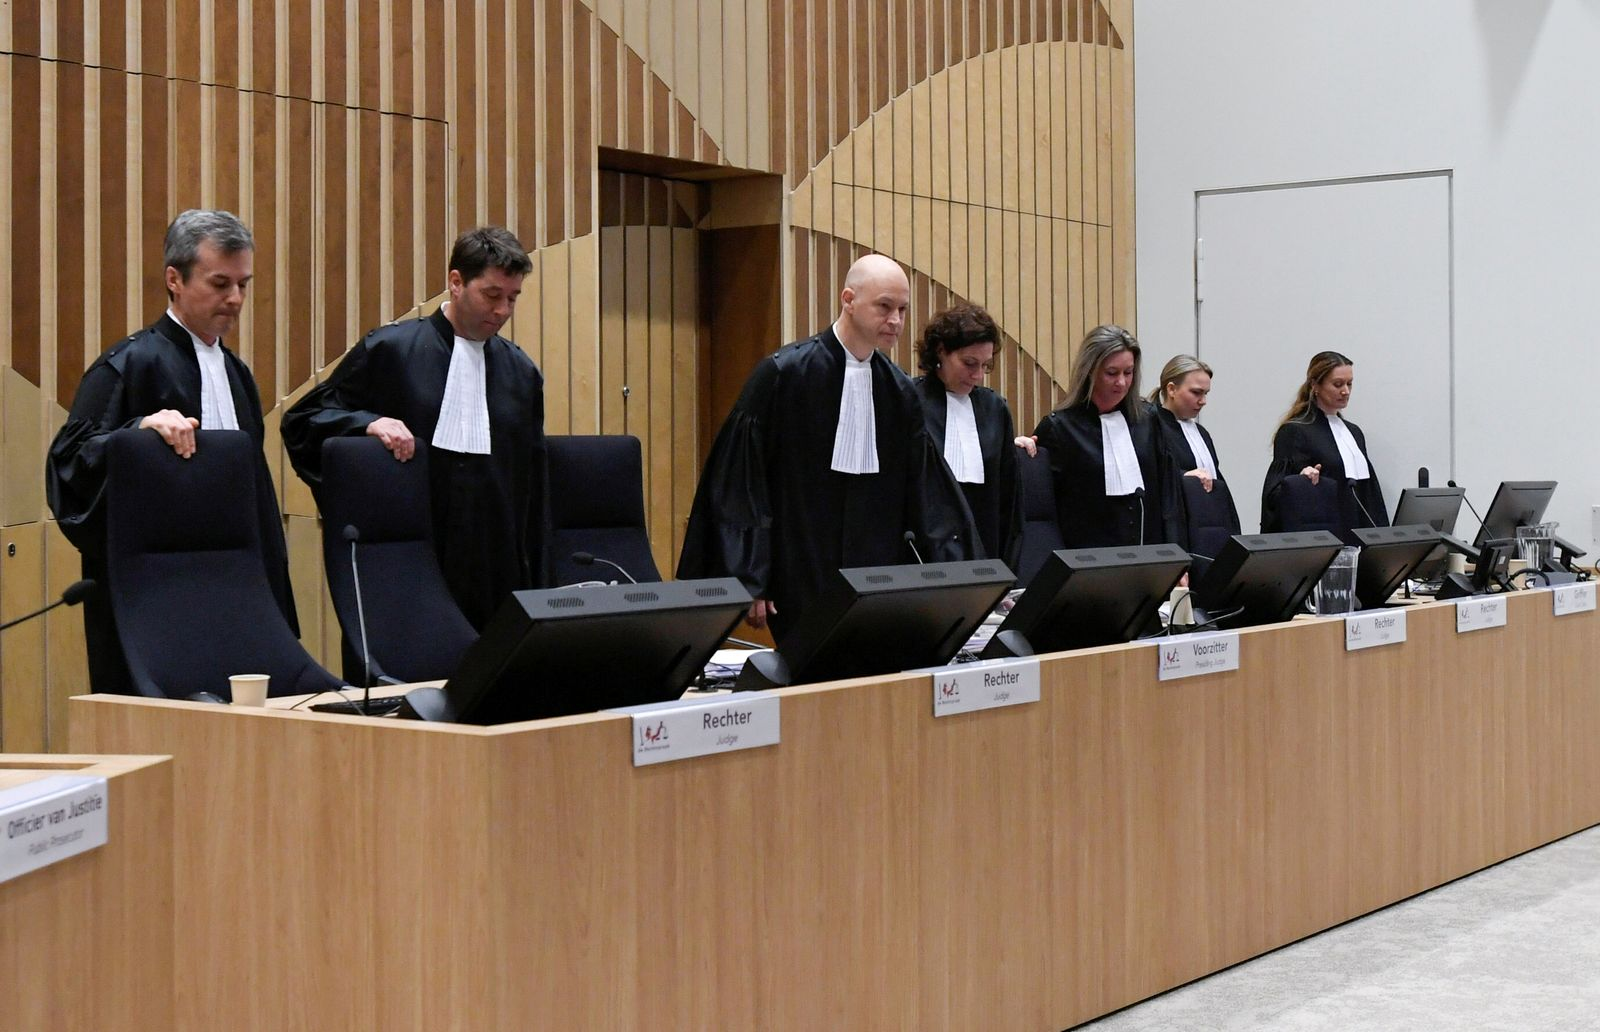 Dutch court opens the criminal trial against four suspects in the July 2014 downing of Malaysia Airlines flight MH17, in Badhoevedorp